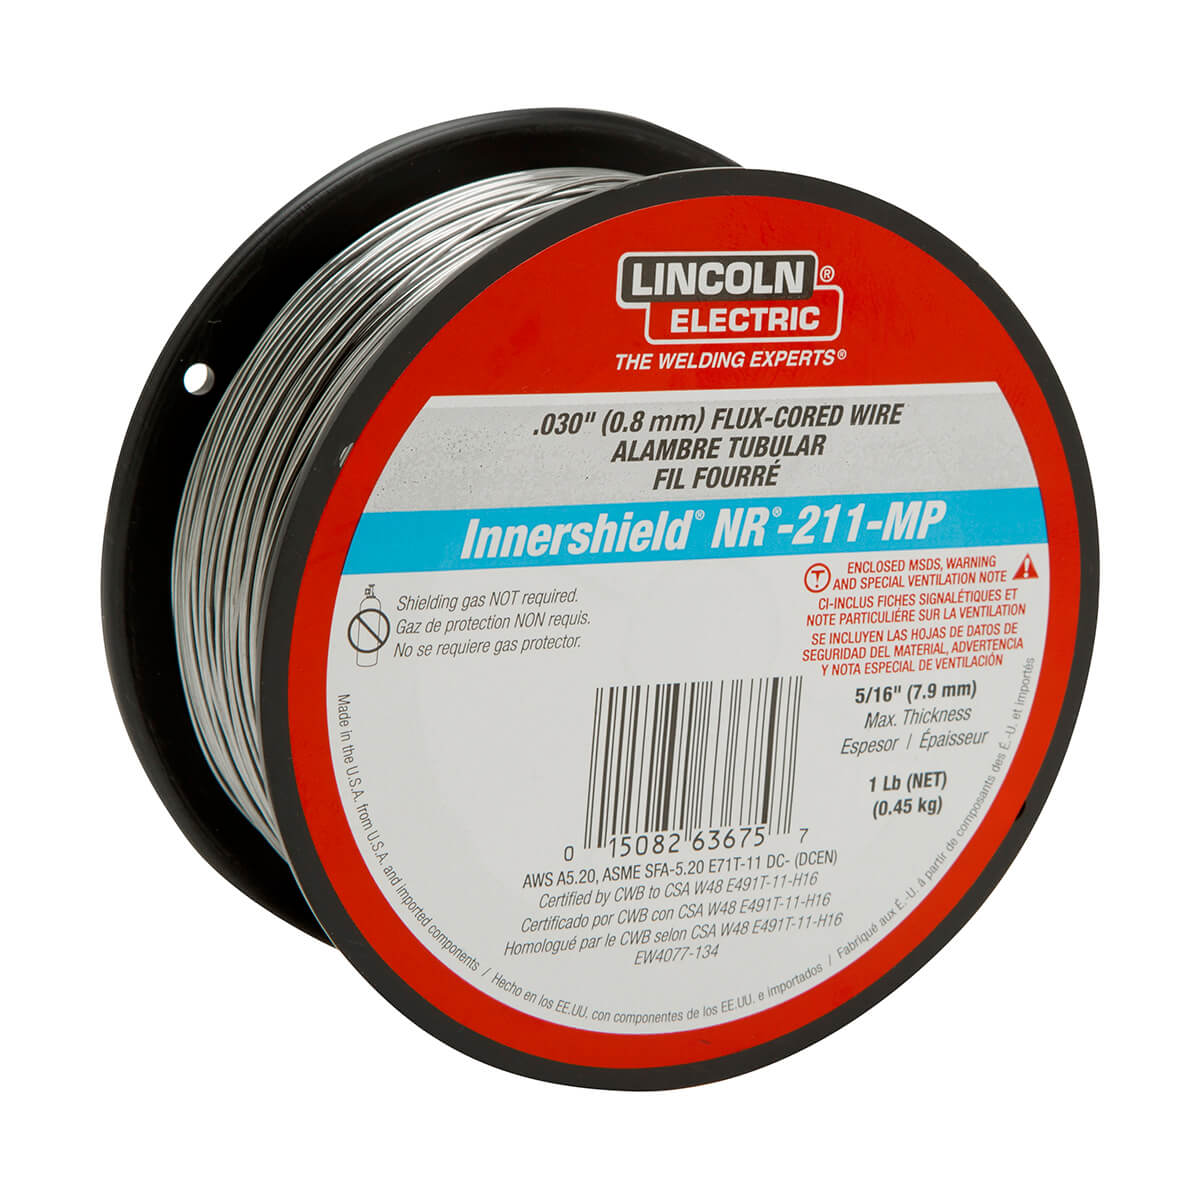 LINCOLN ELECTRIC ED031448 MIG Welding Wire NR-211-MP - 1 lb Spool